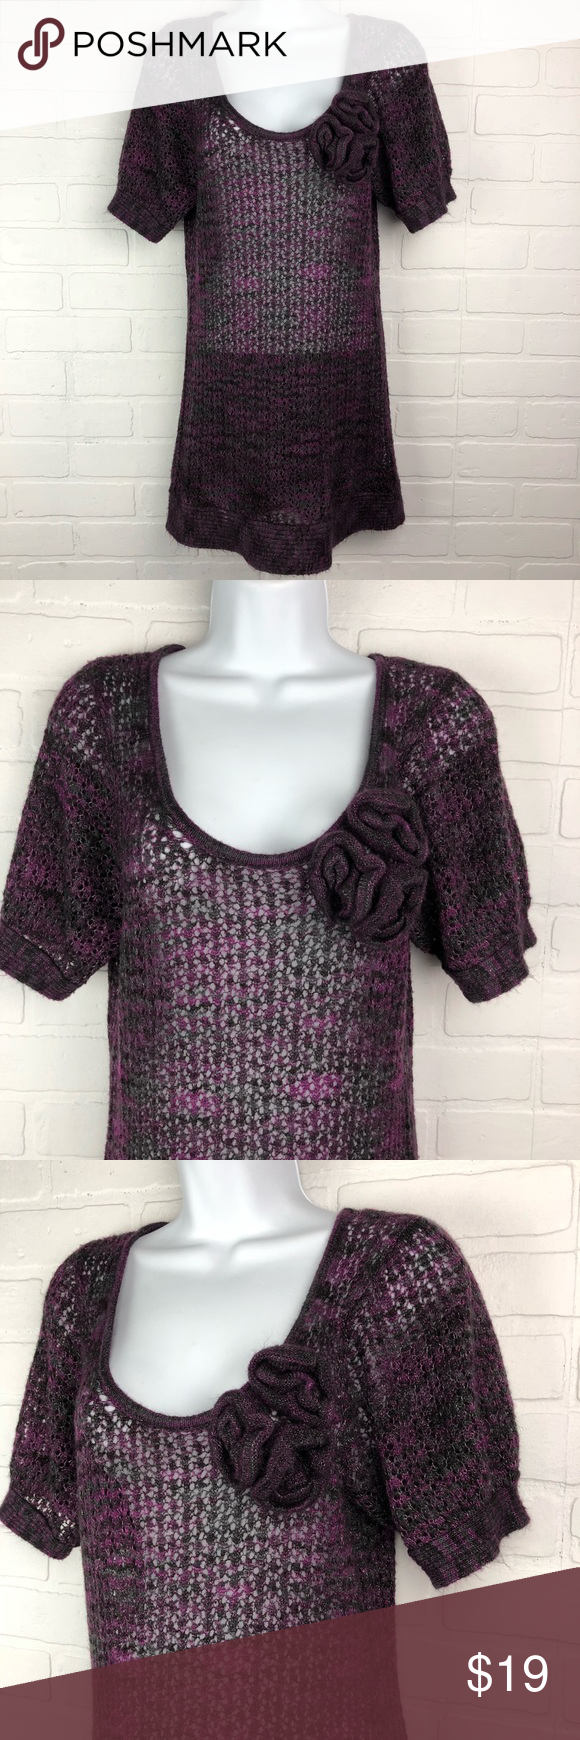 Kensie Pretty L Purple Open Knit Embellished Top